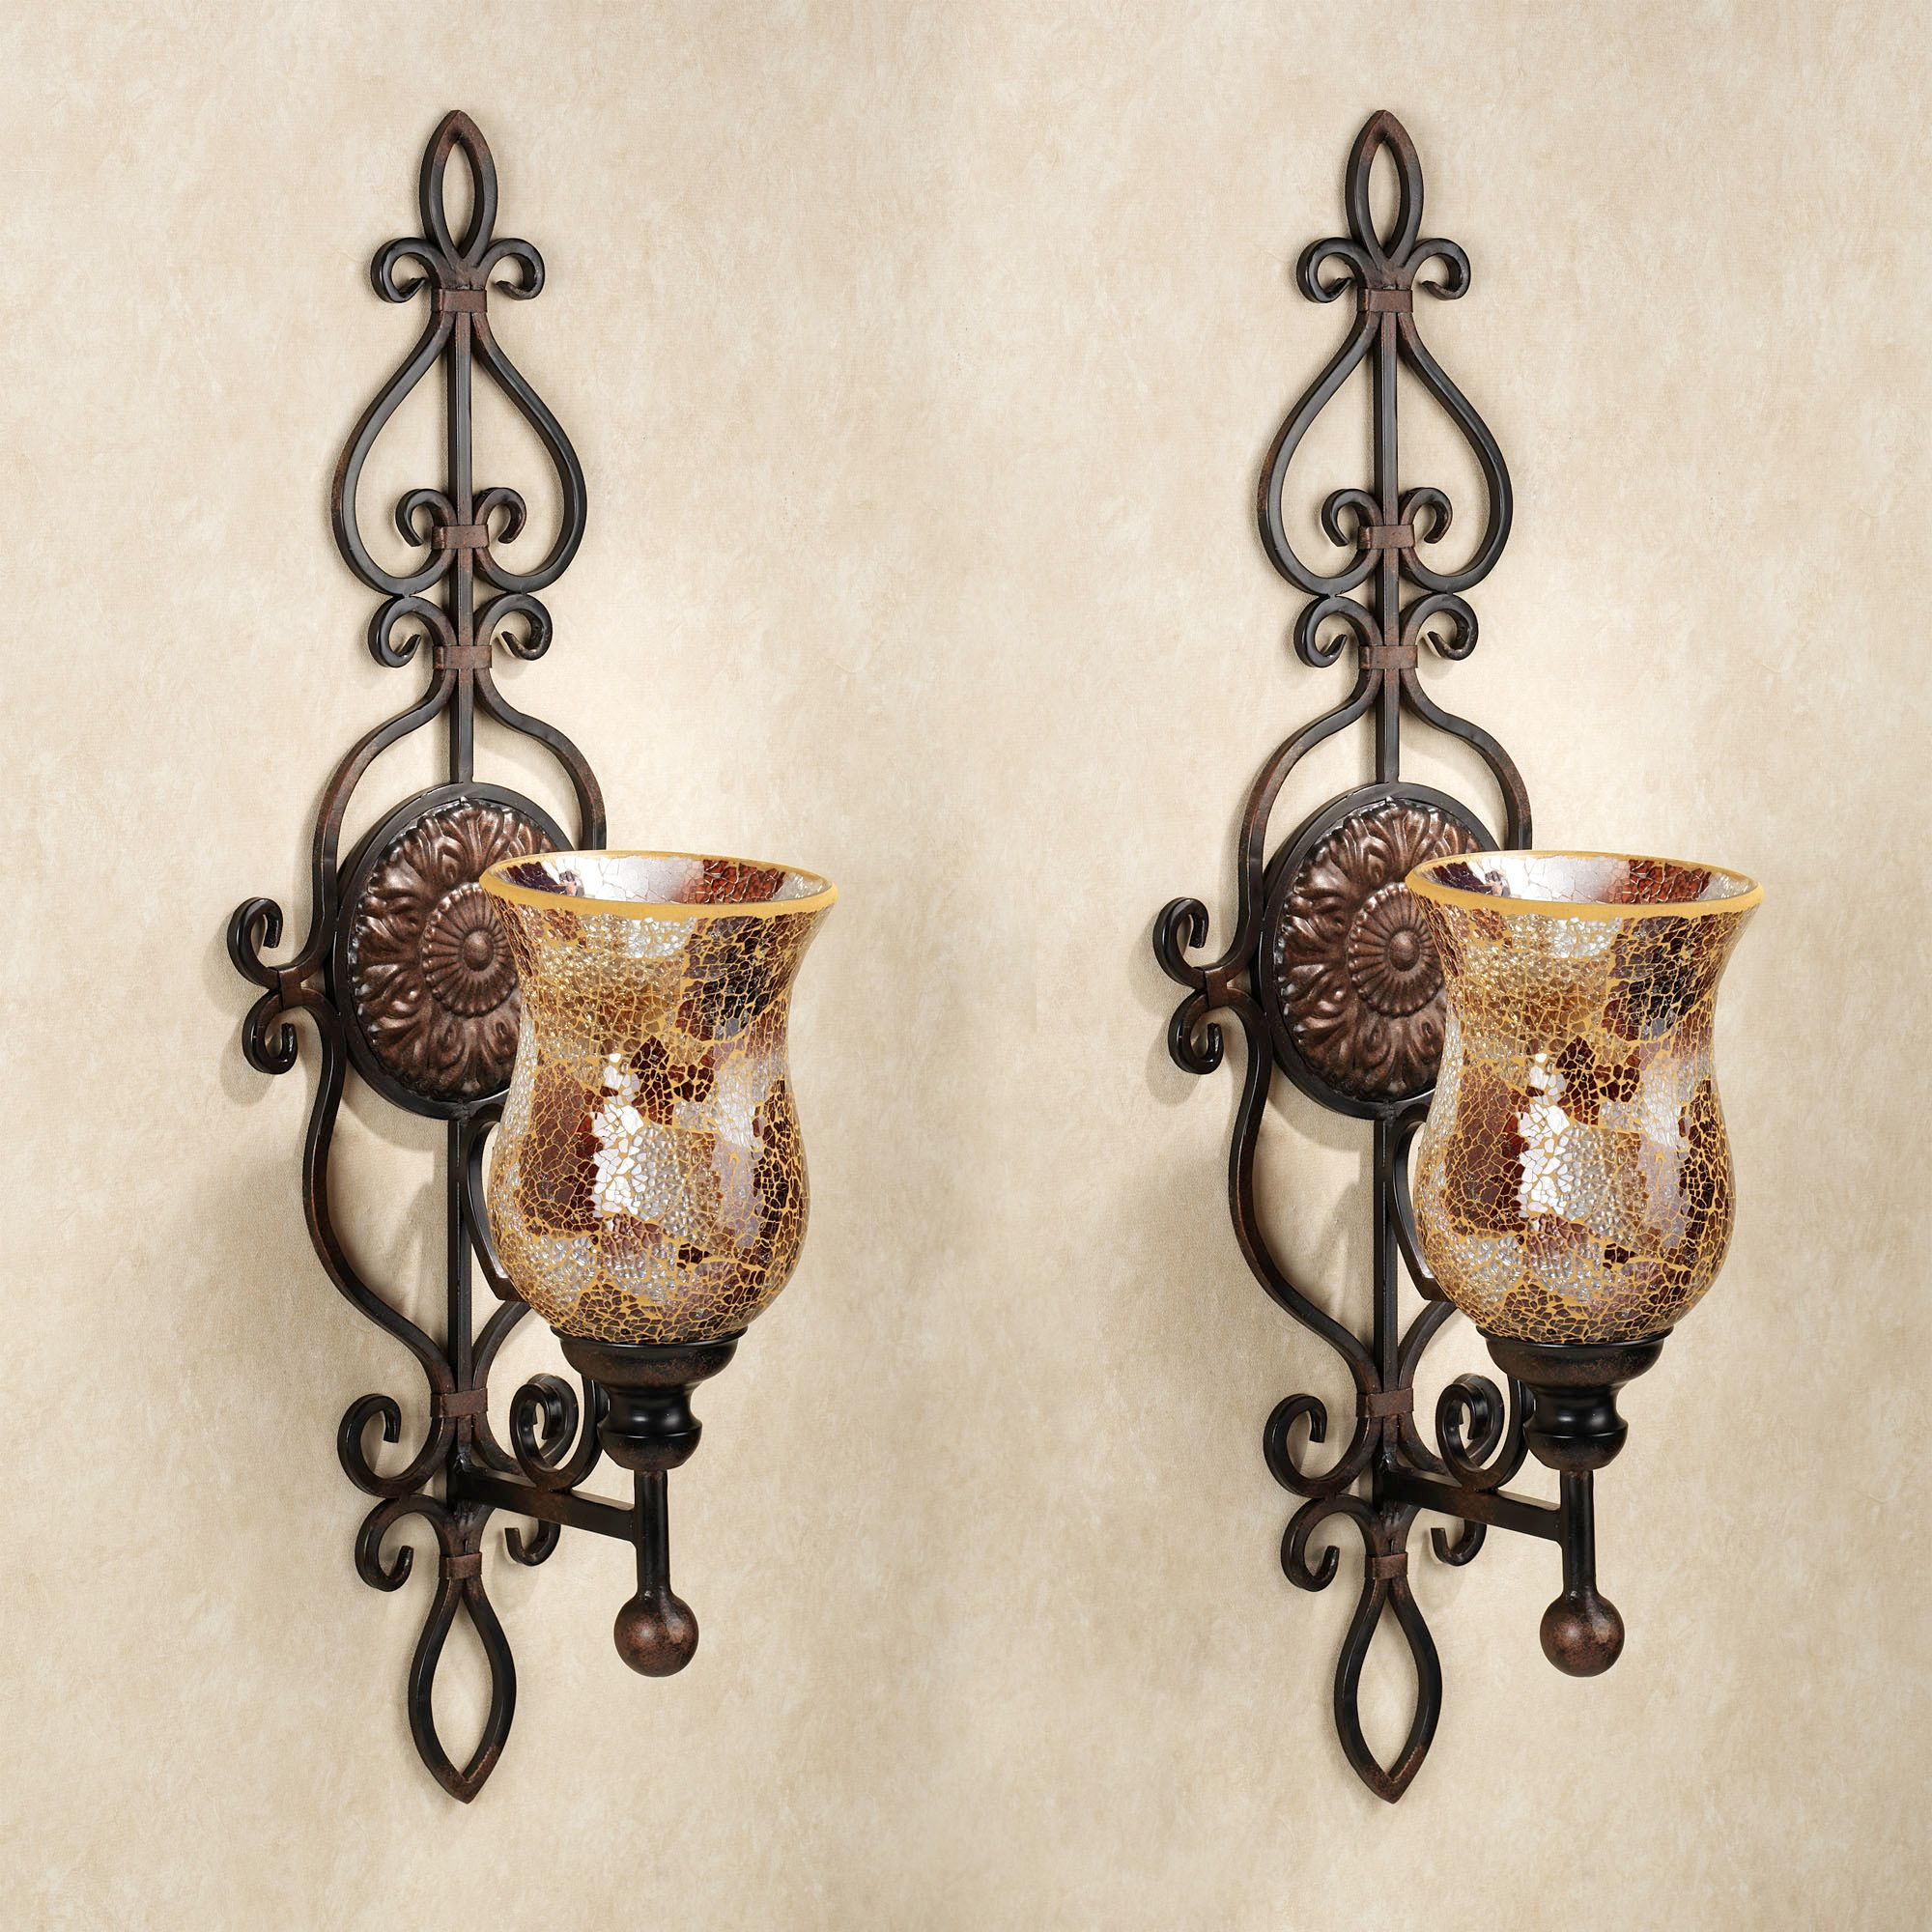 Image of: decorative wall candle holders